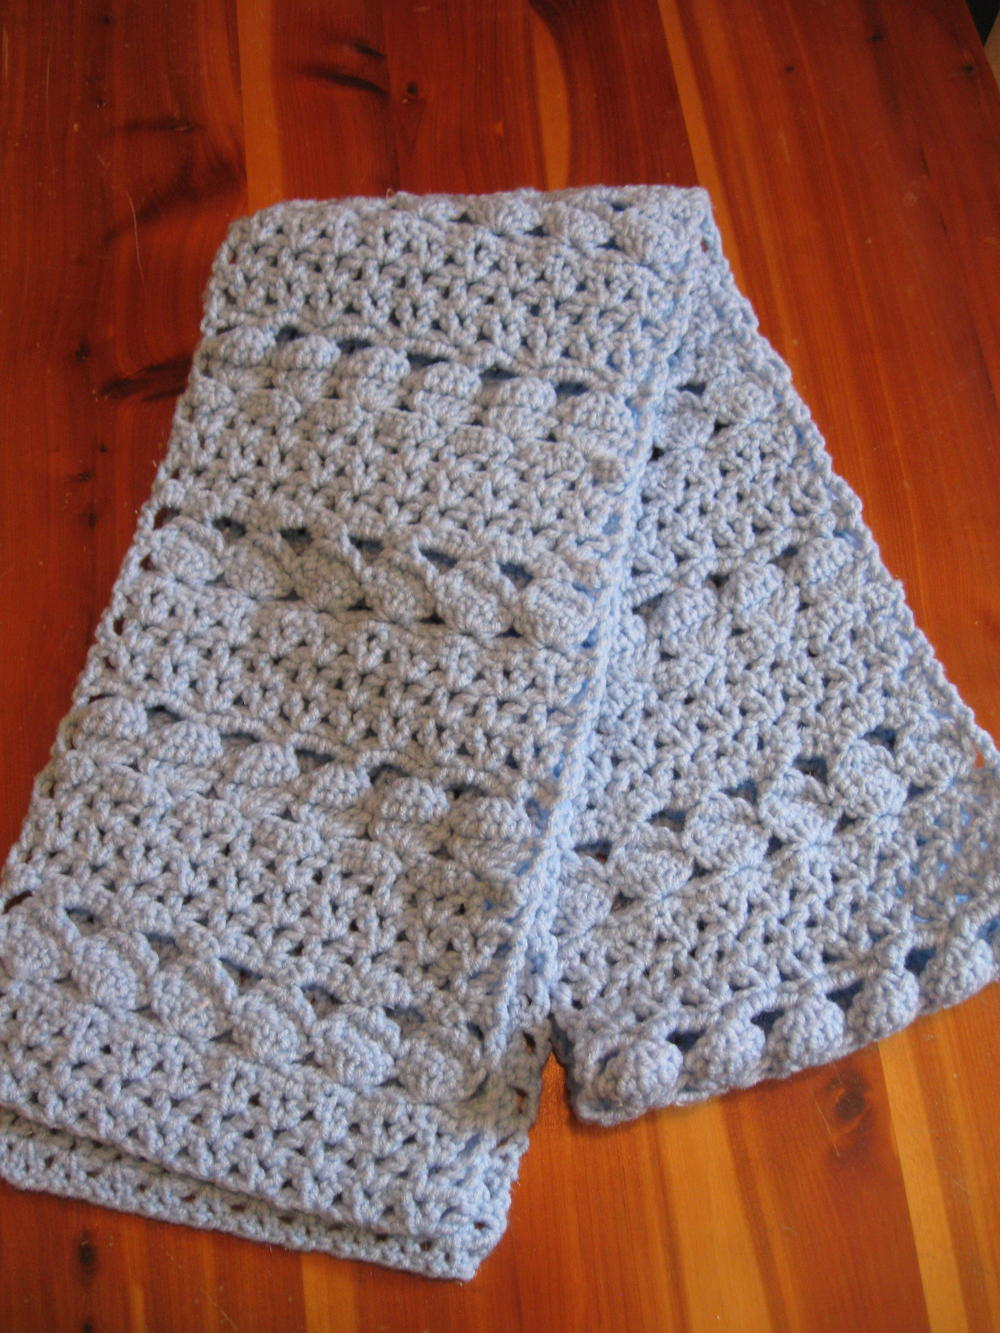 Crochet Scarf Pattern With Pictures : Cozy Blue Crochet Scarf AllFreeCrochet.com